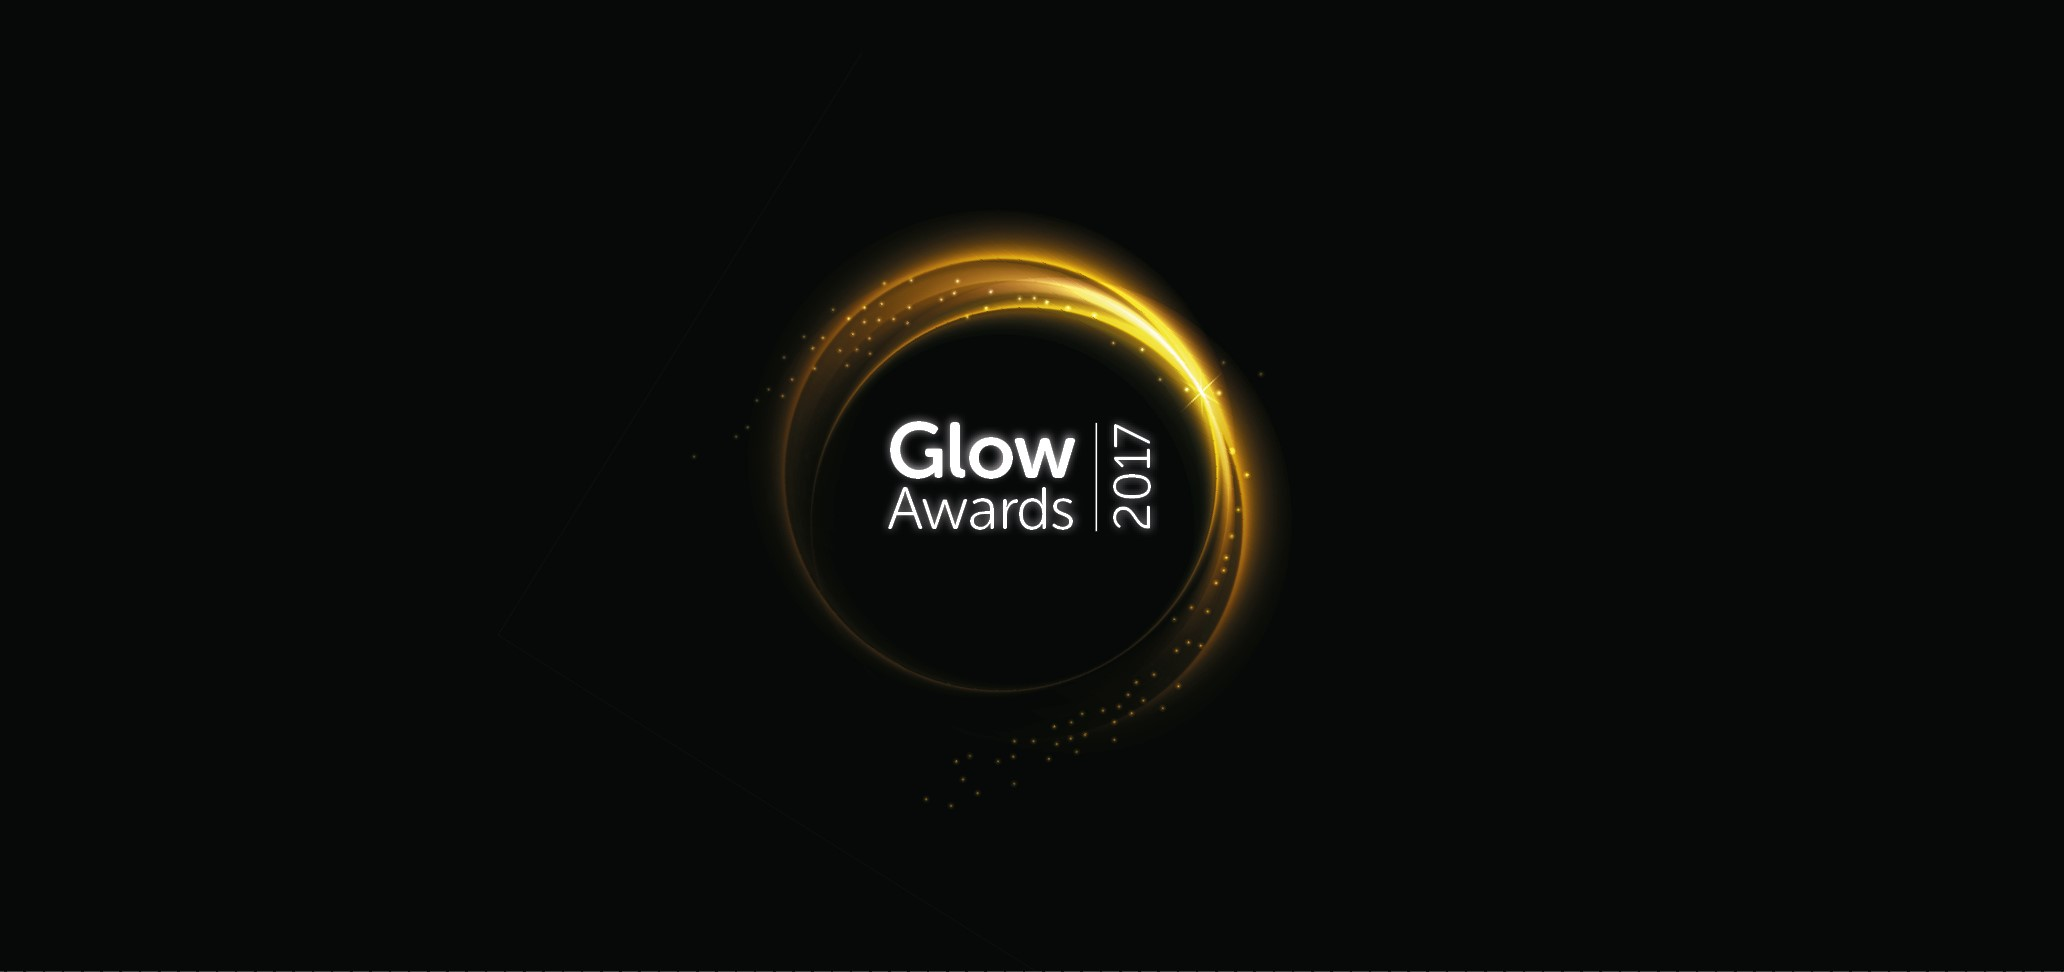 Logo for British Steel's Glow awards.